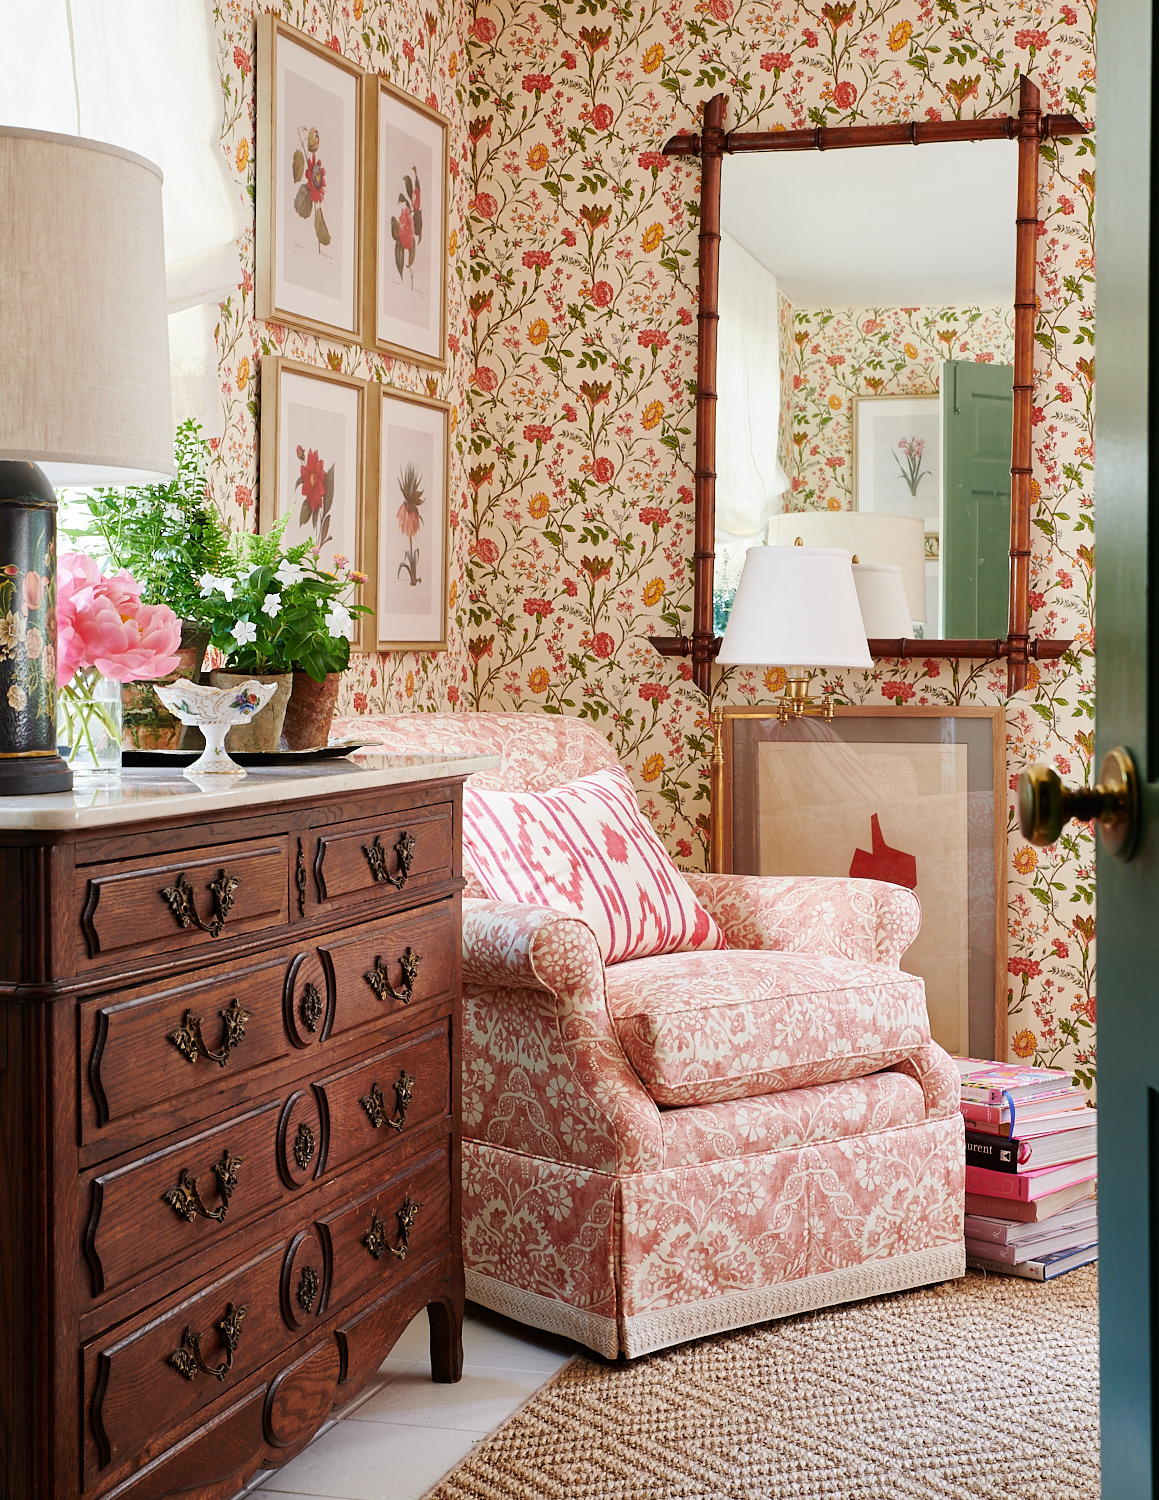 Pink and white upholstered chair with skirt and custom pillow